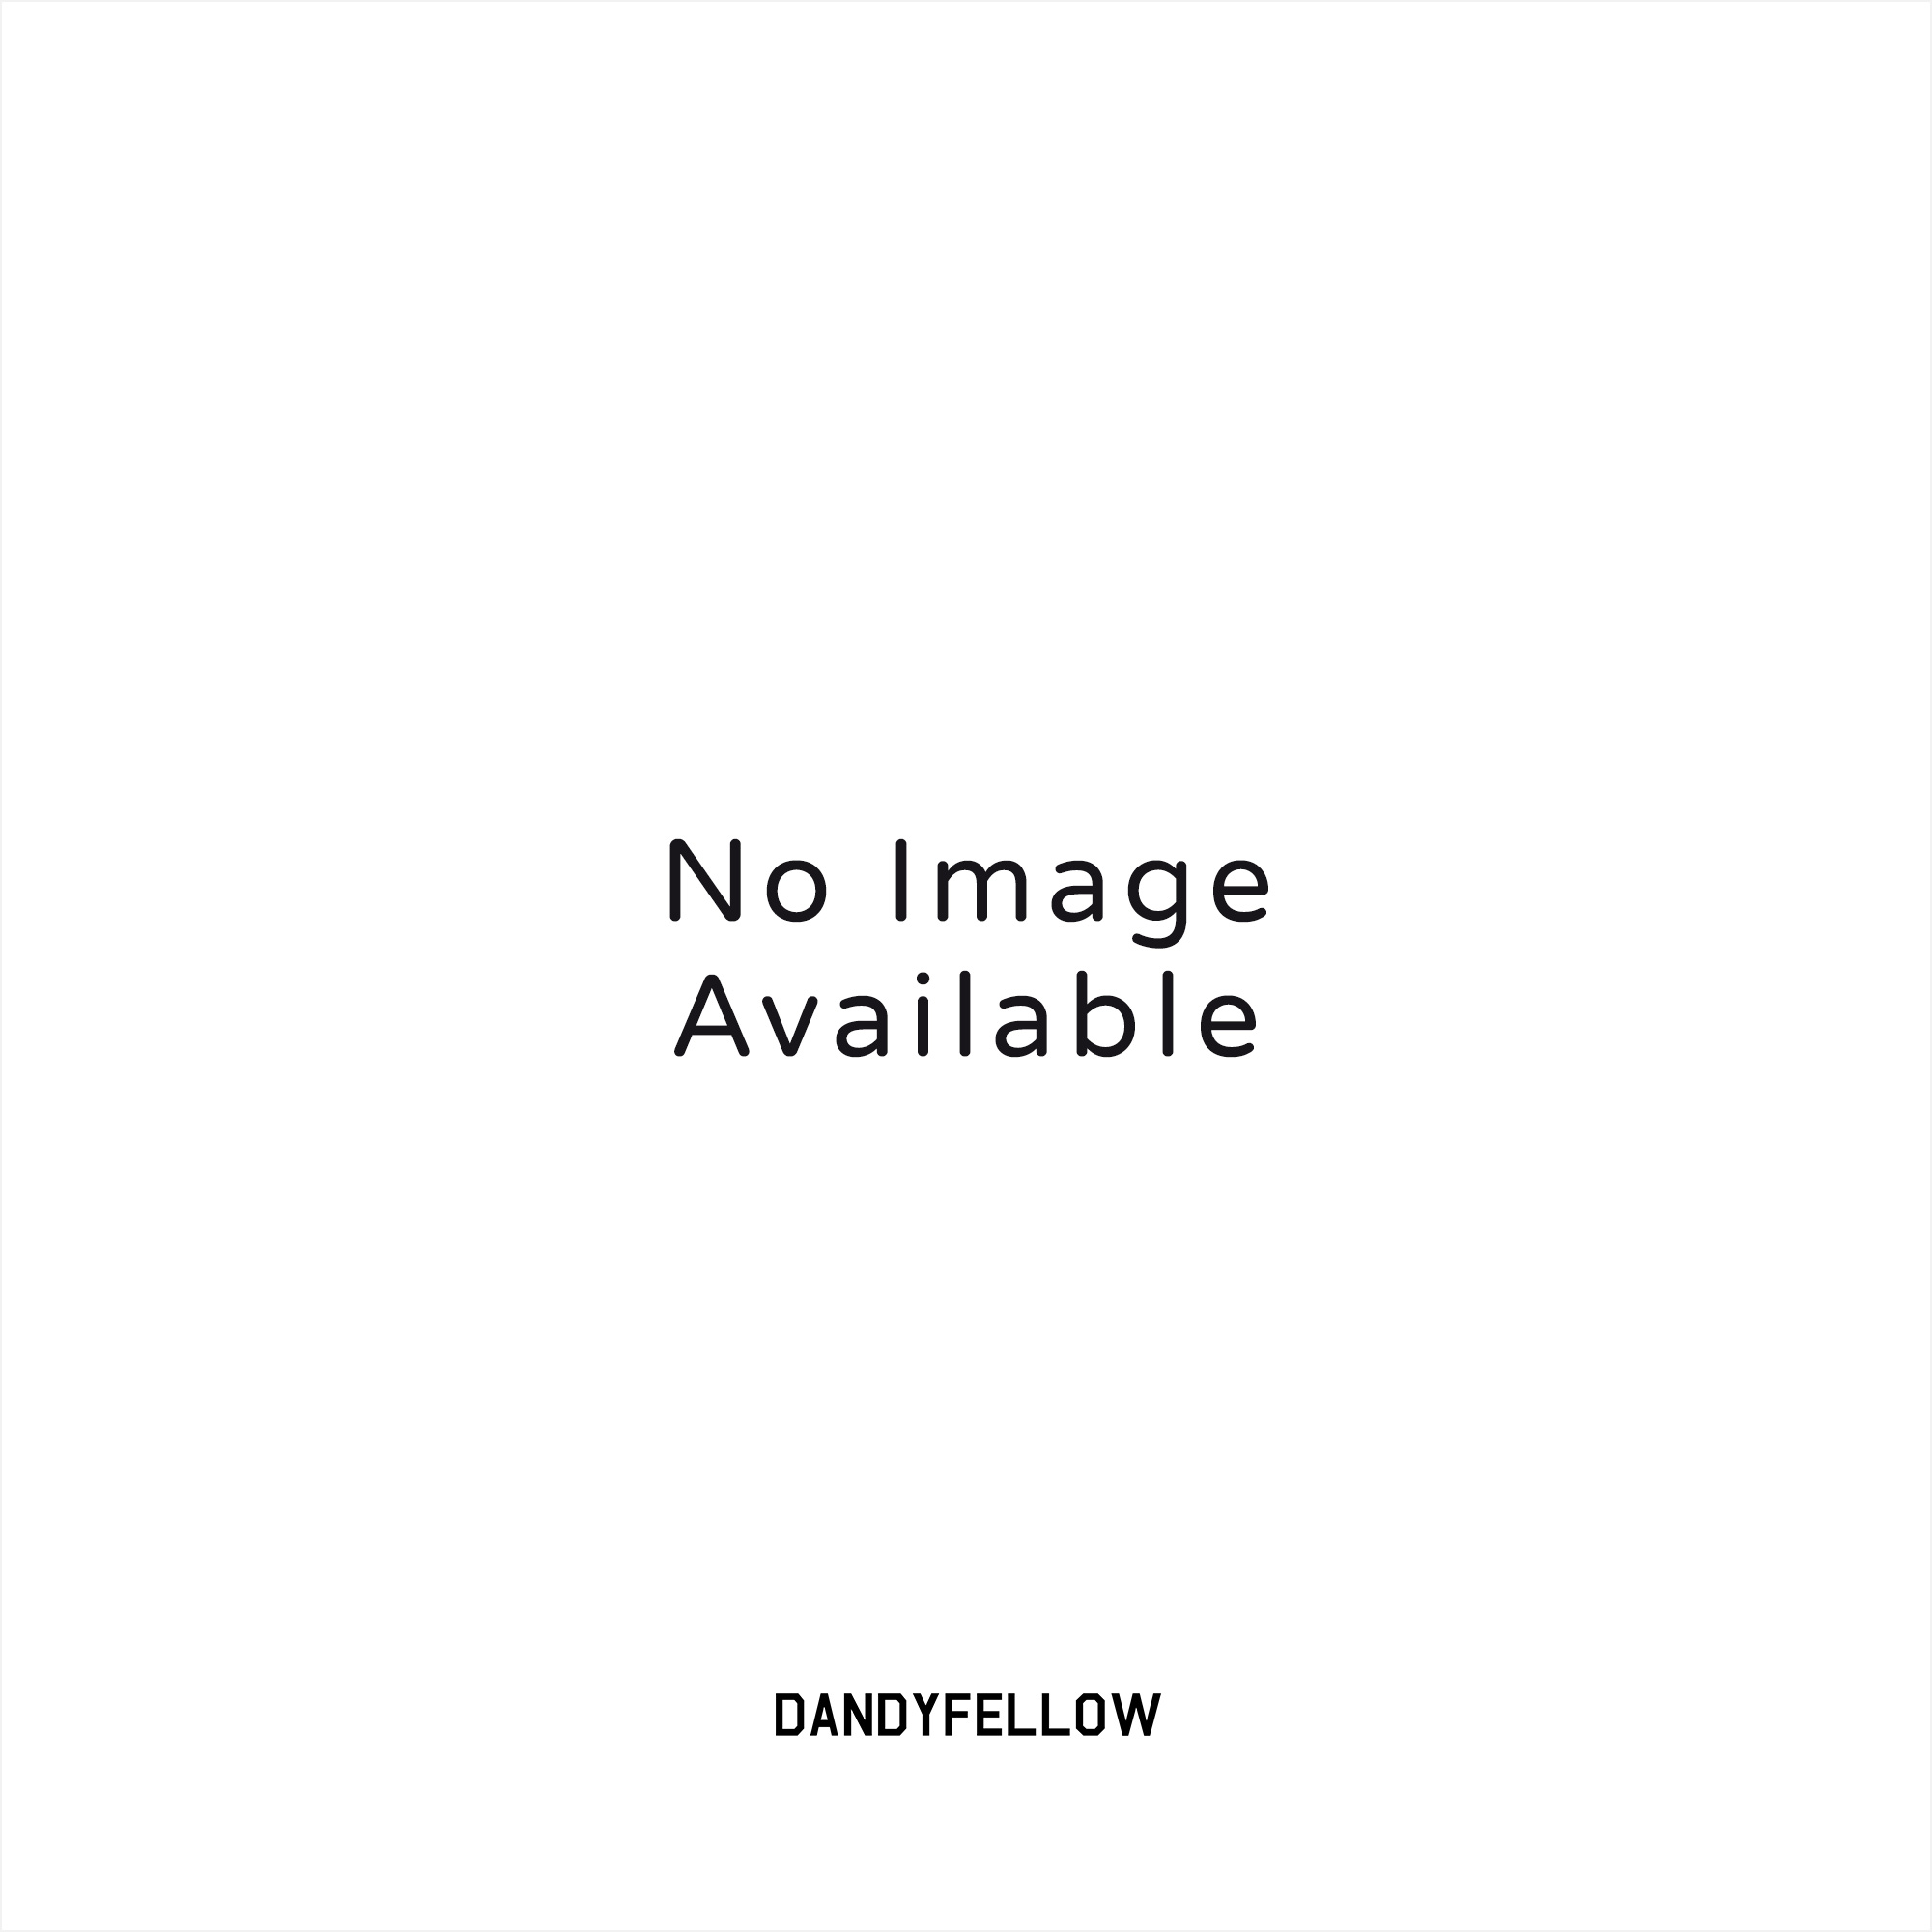 475d2cb4496 Nike Air Force 1  Just Do It  (White) at Dandy Fellow